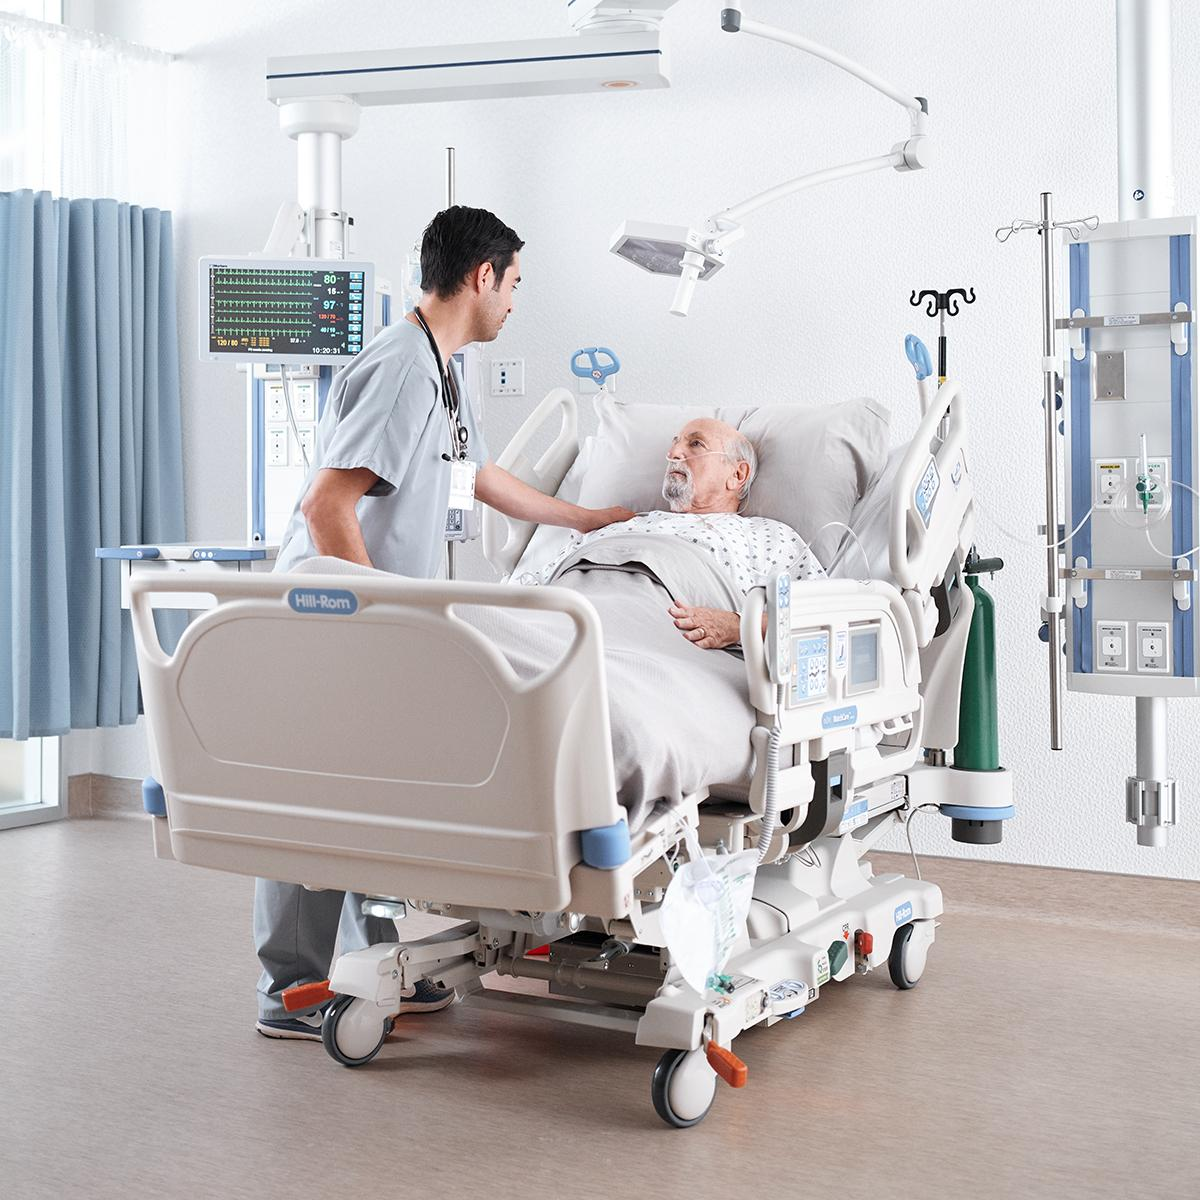 Patient in the ICU being comforted by his clinician